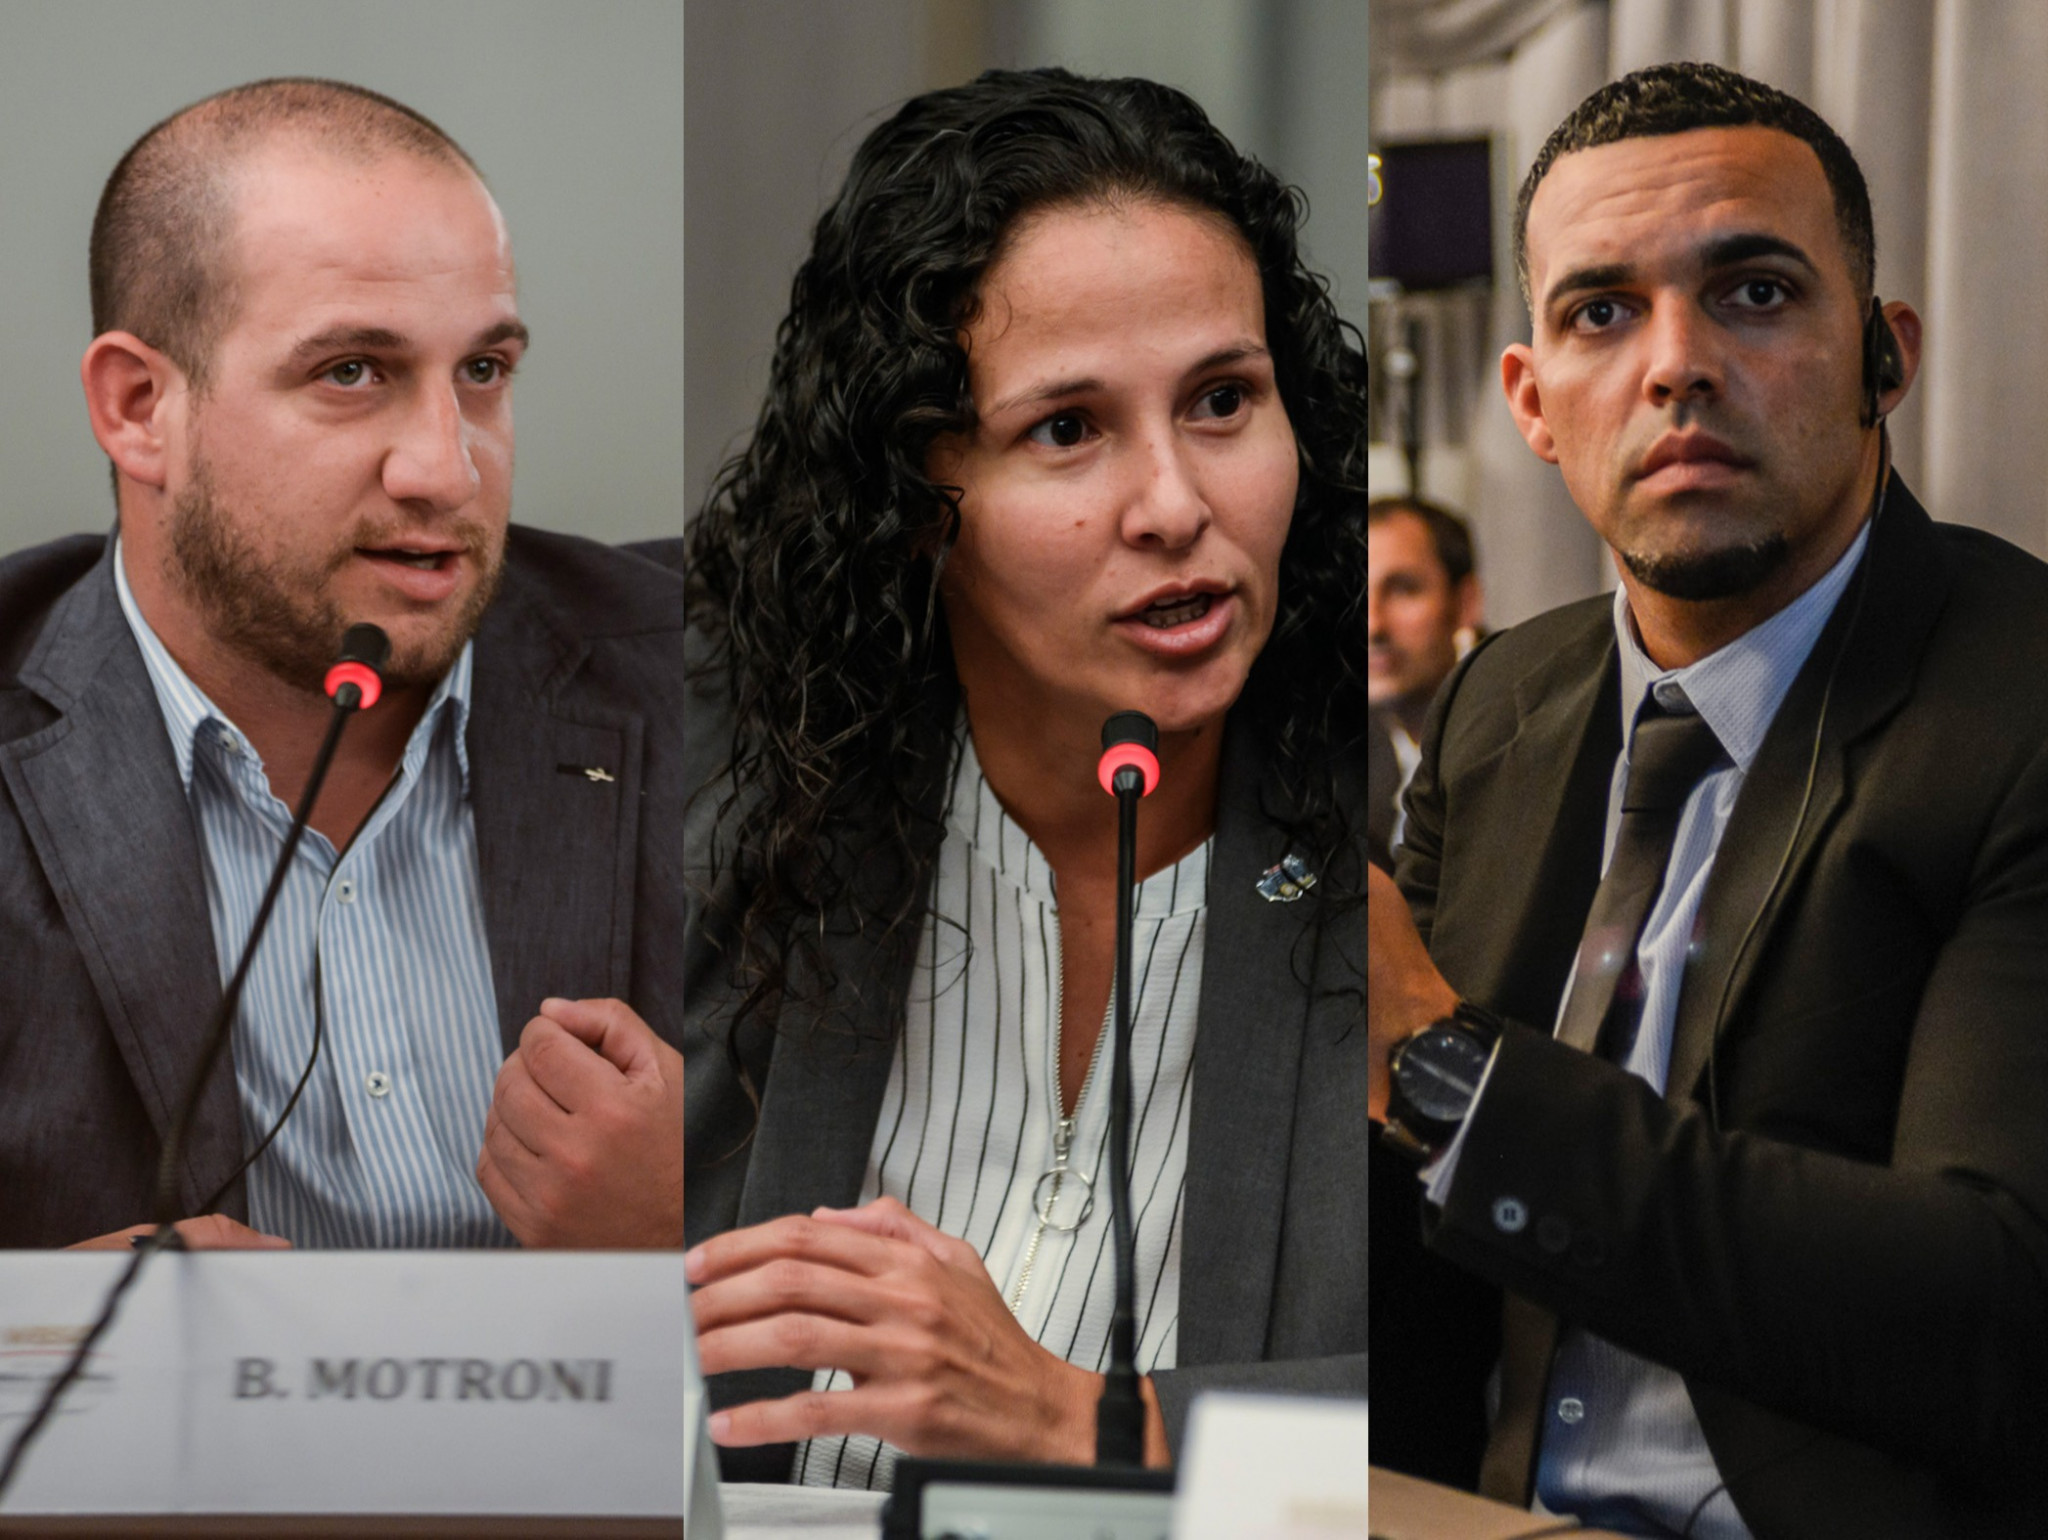 The Netherlands' Randolph Oduber, right, and Argentina's Bruno Motroni, left, are both members of the WBSC Athletes' Commission, which is co-chaired by Venezuela's María Soto, centre ©WBSC